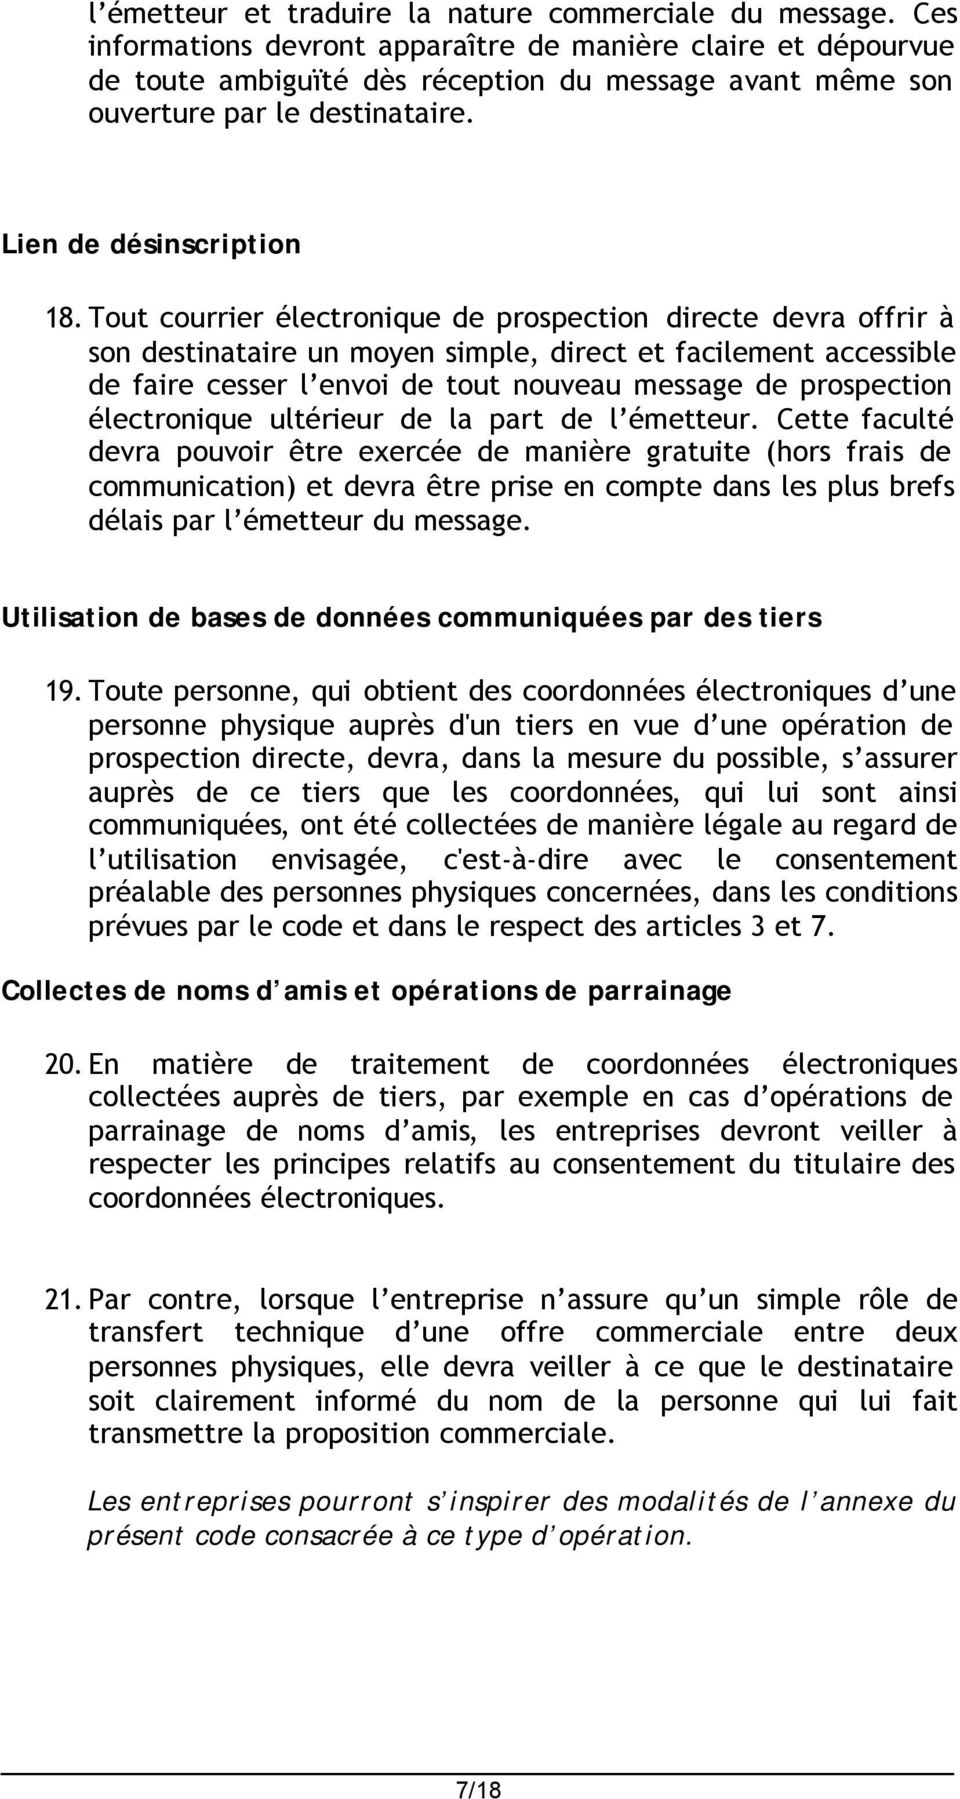 Tout courrier électronique de prospection directe devra offrir à son destinataire un moyen simple, direct et facilement accessible de faire cesser l envoi de tout nouveau message de prospection